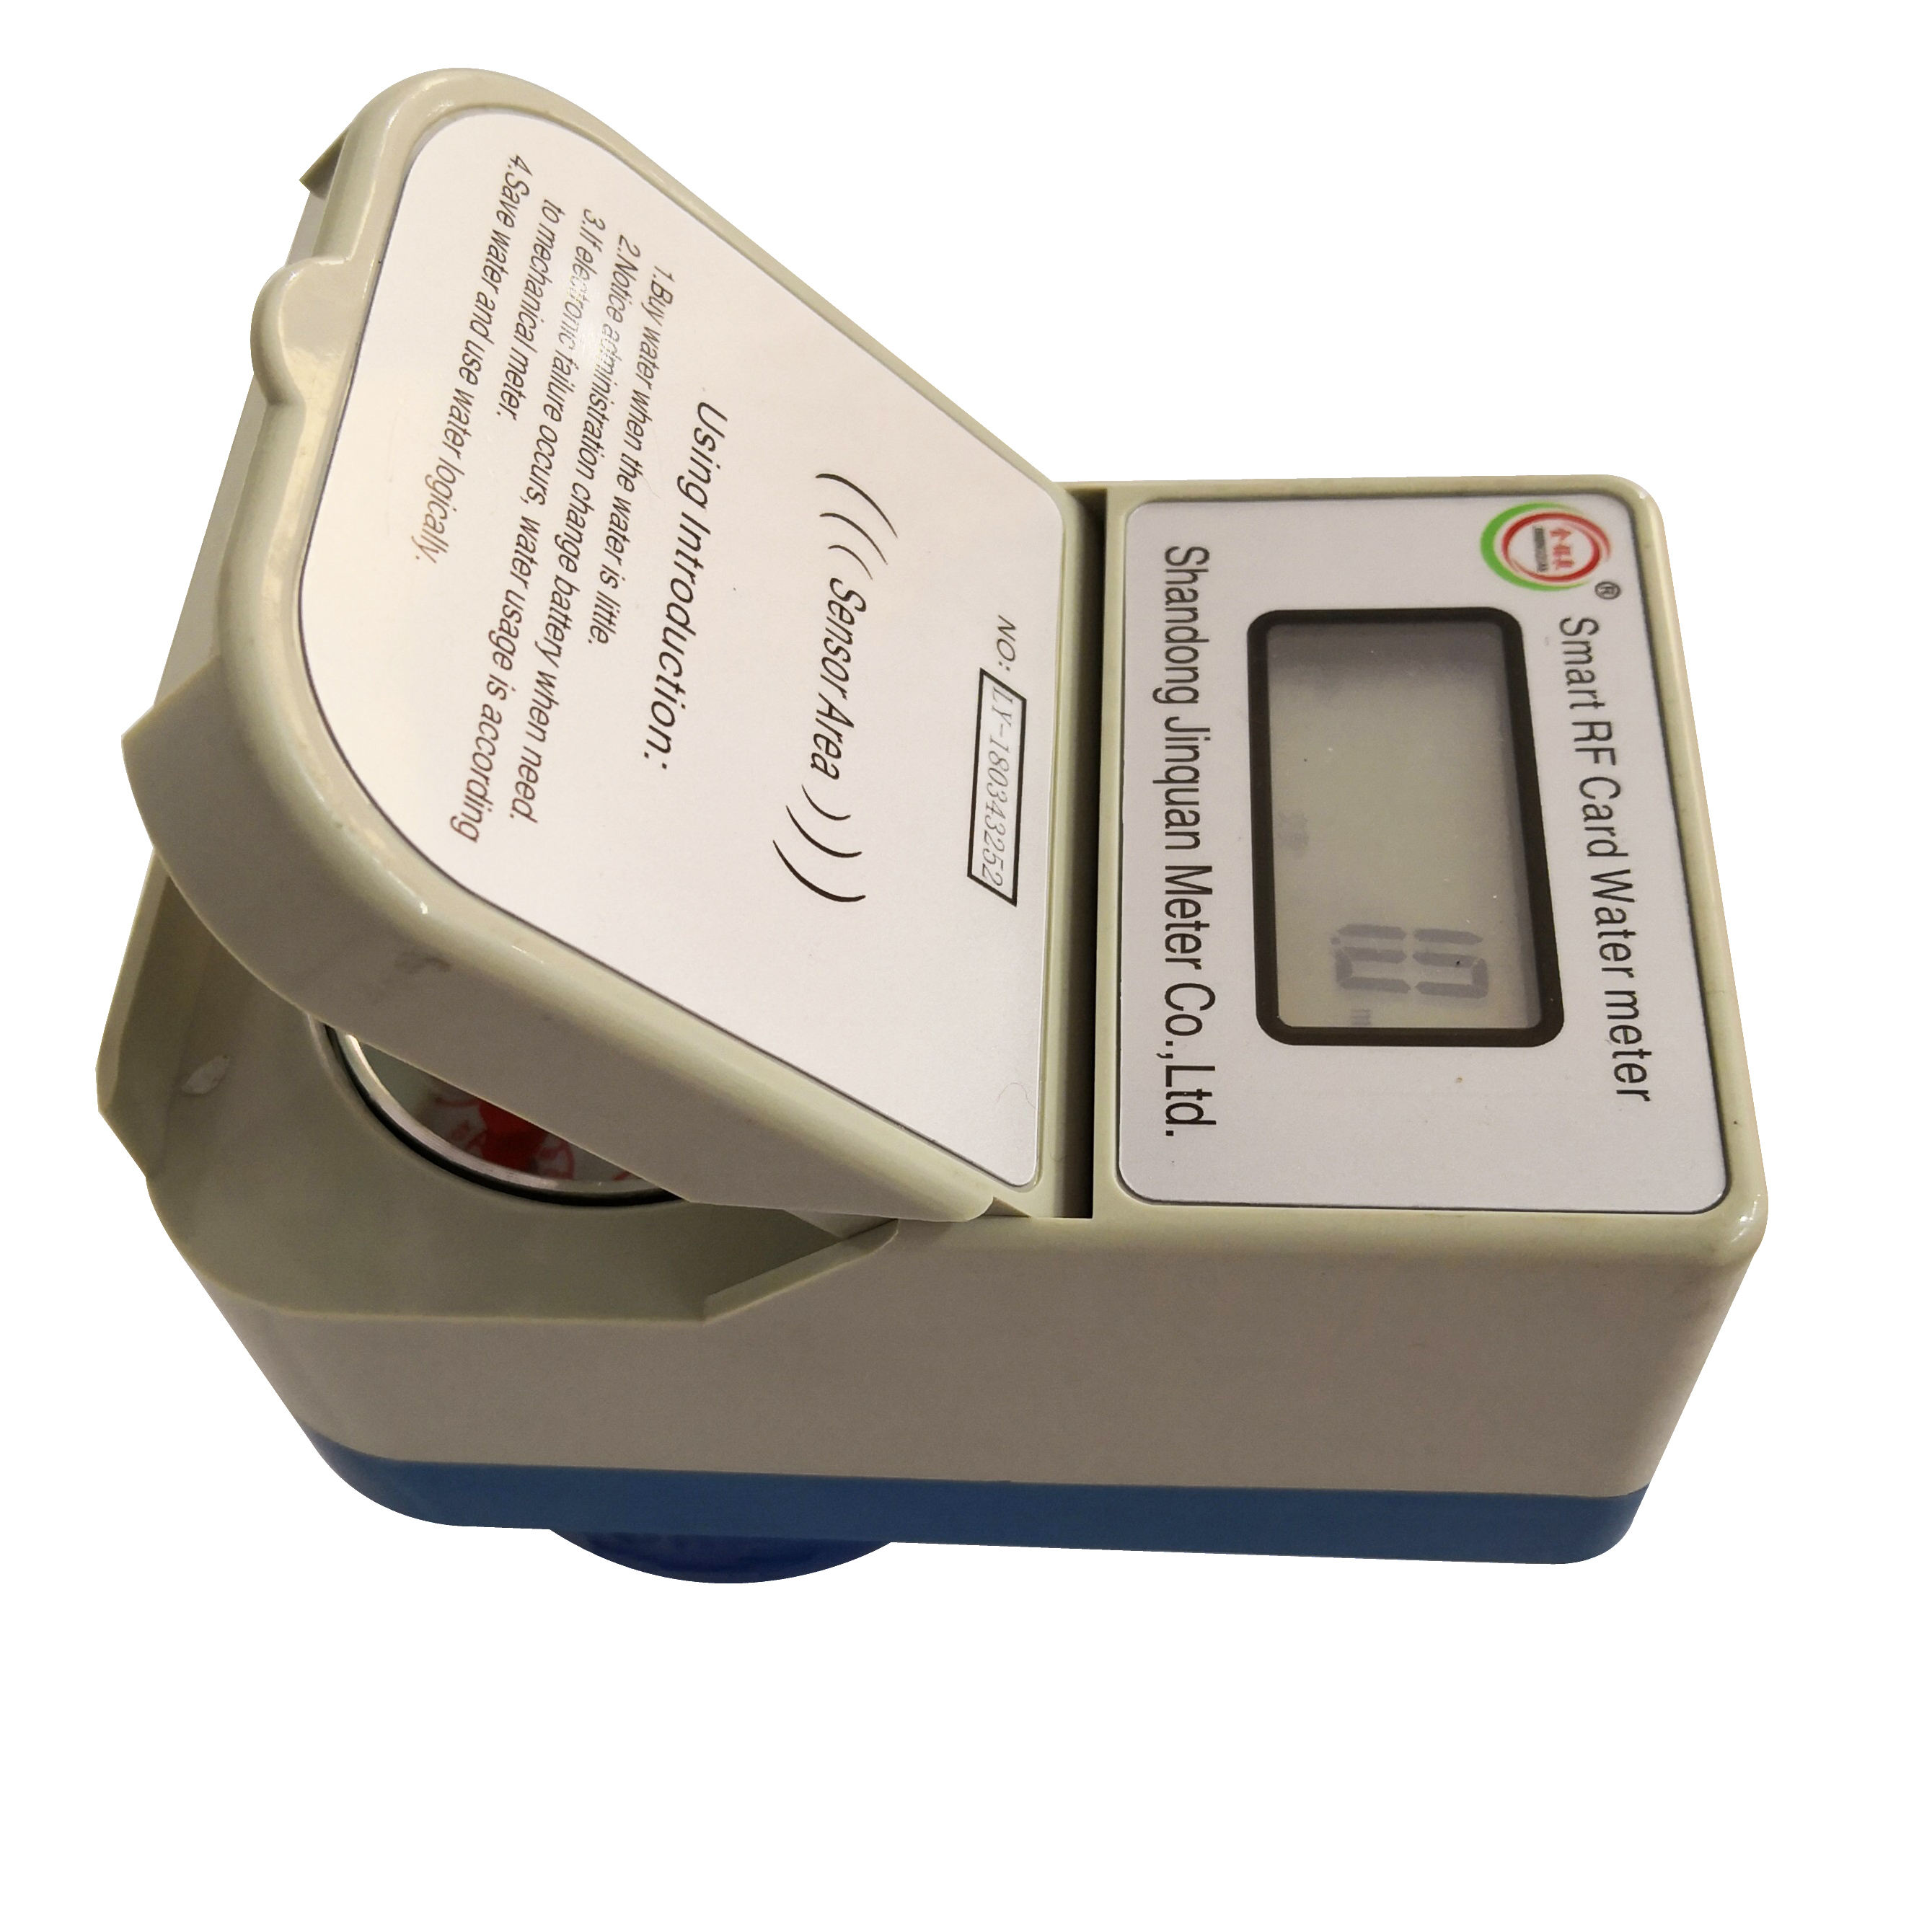 Smart IC card prepaid water meter with free vending software